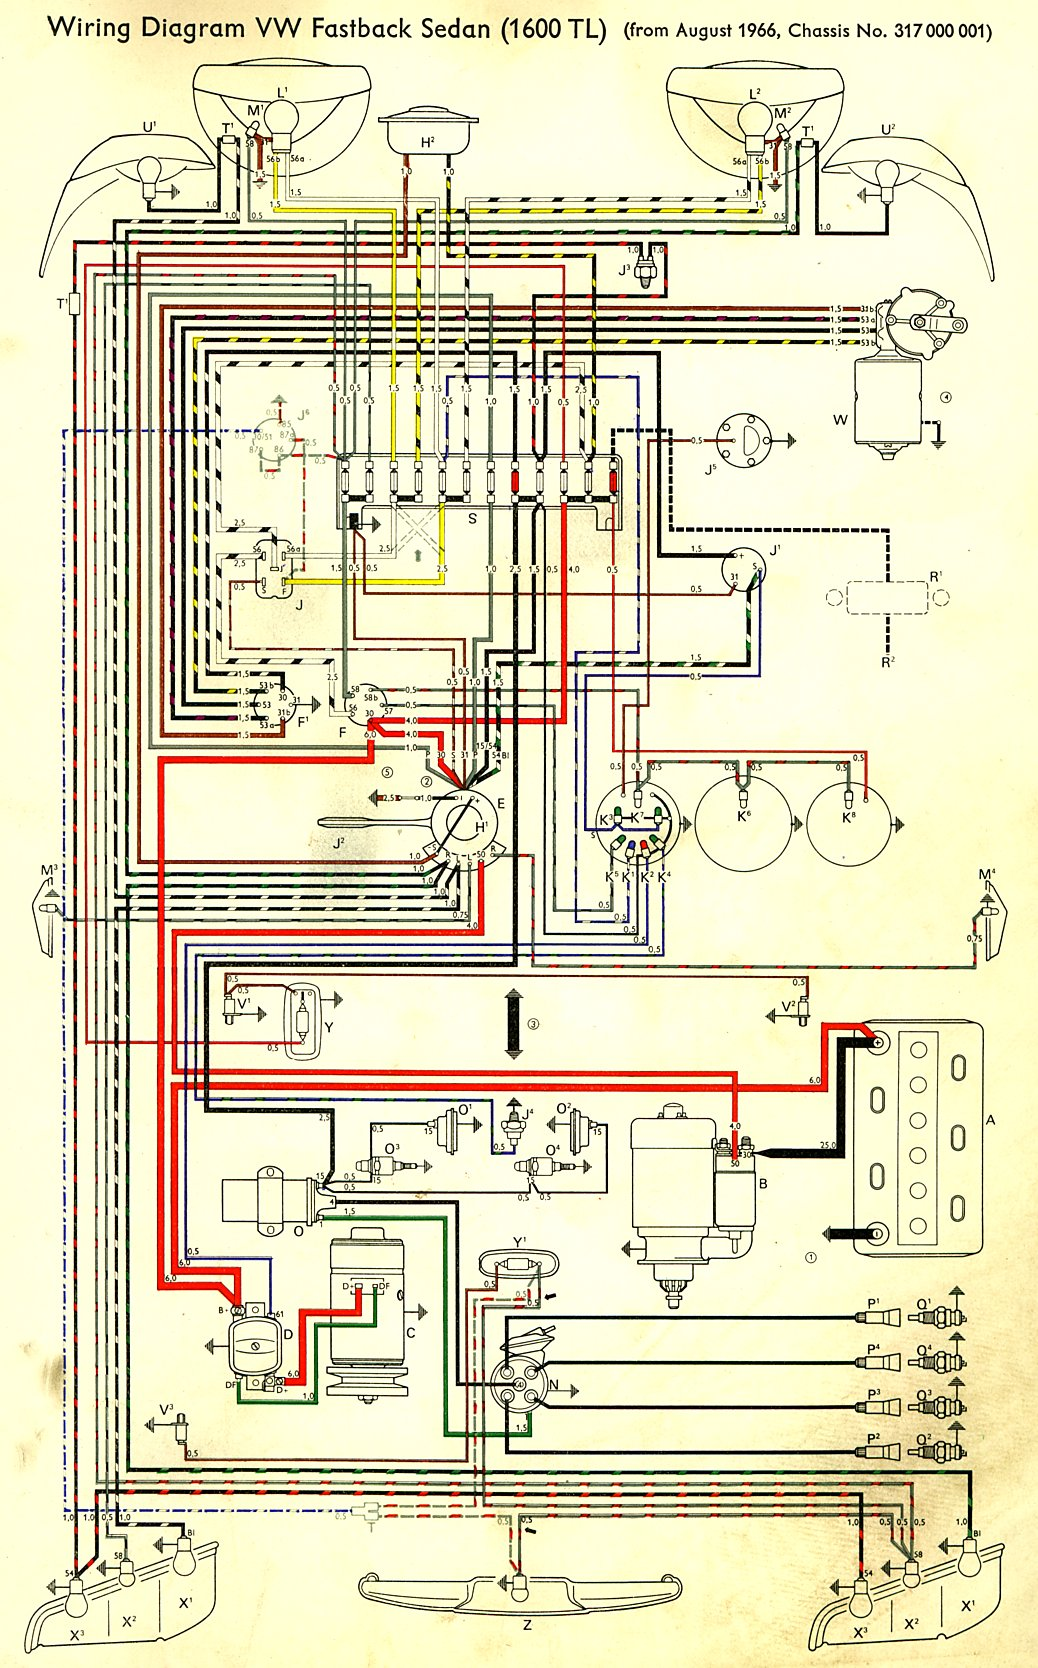 type3_1600TL_67 28 [ 1971 vw bus wiring diagram ] 1971 bus wiring diagram vw bus wiring diagram at edmiracle.co